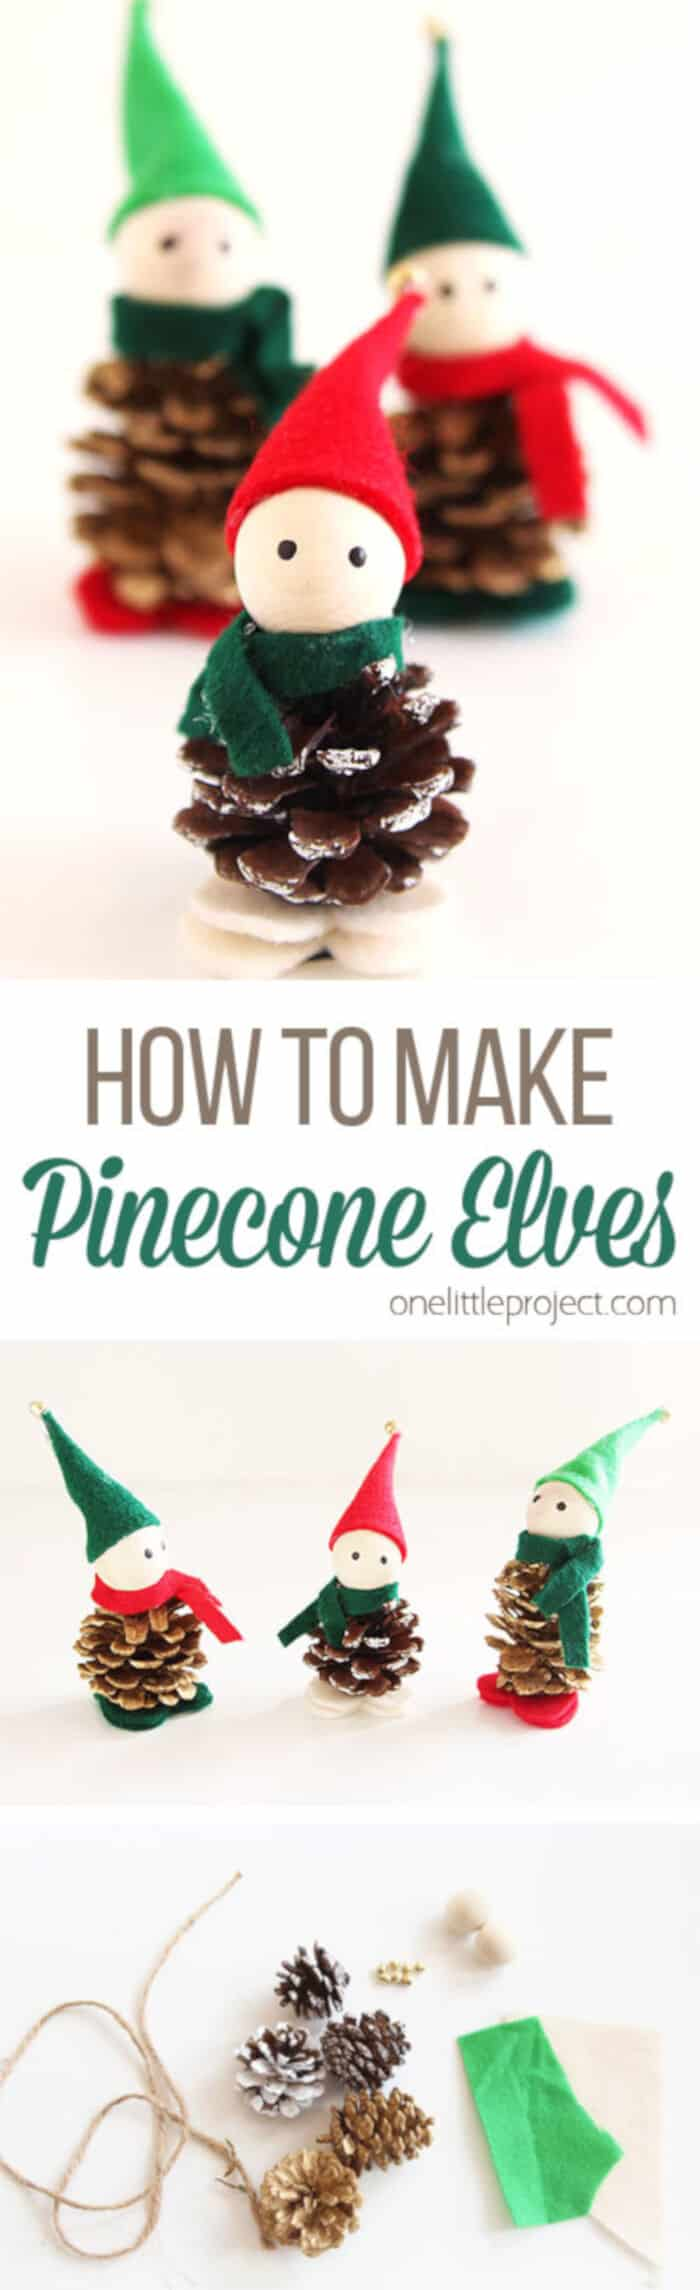 Pinecone Elves by One Little Project